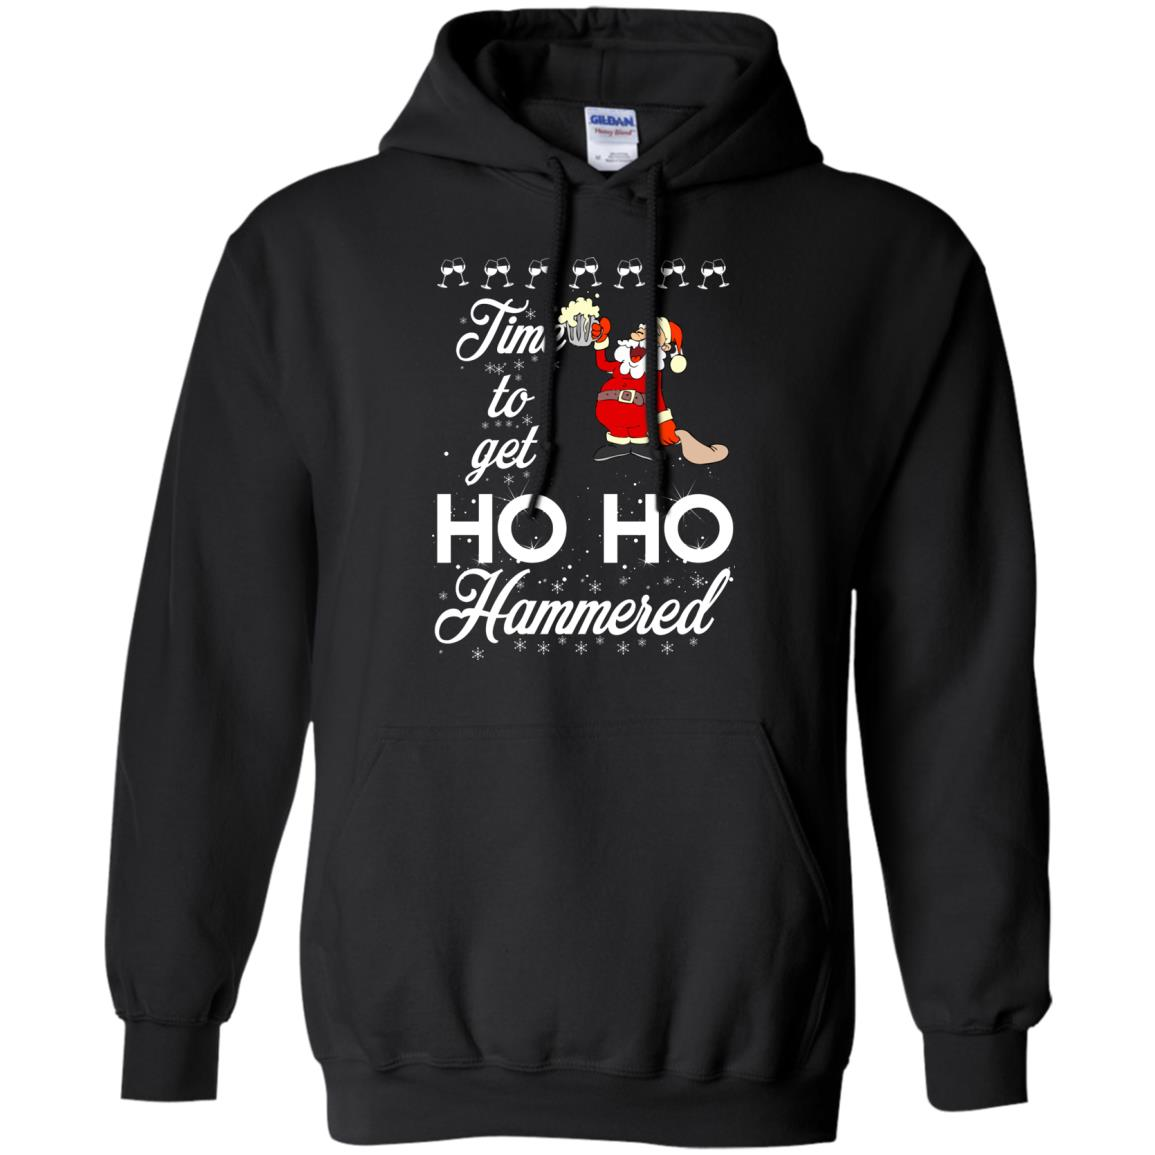 image 1651 - Time To Get Ho Ho Hammered Christmas Sweater, Shirt